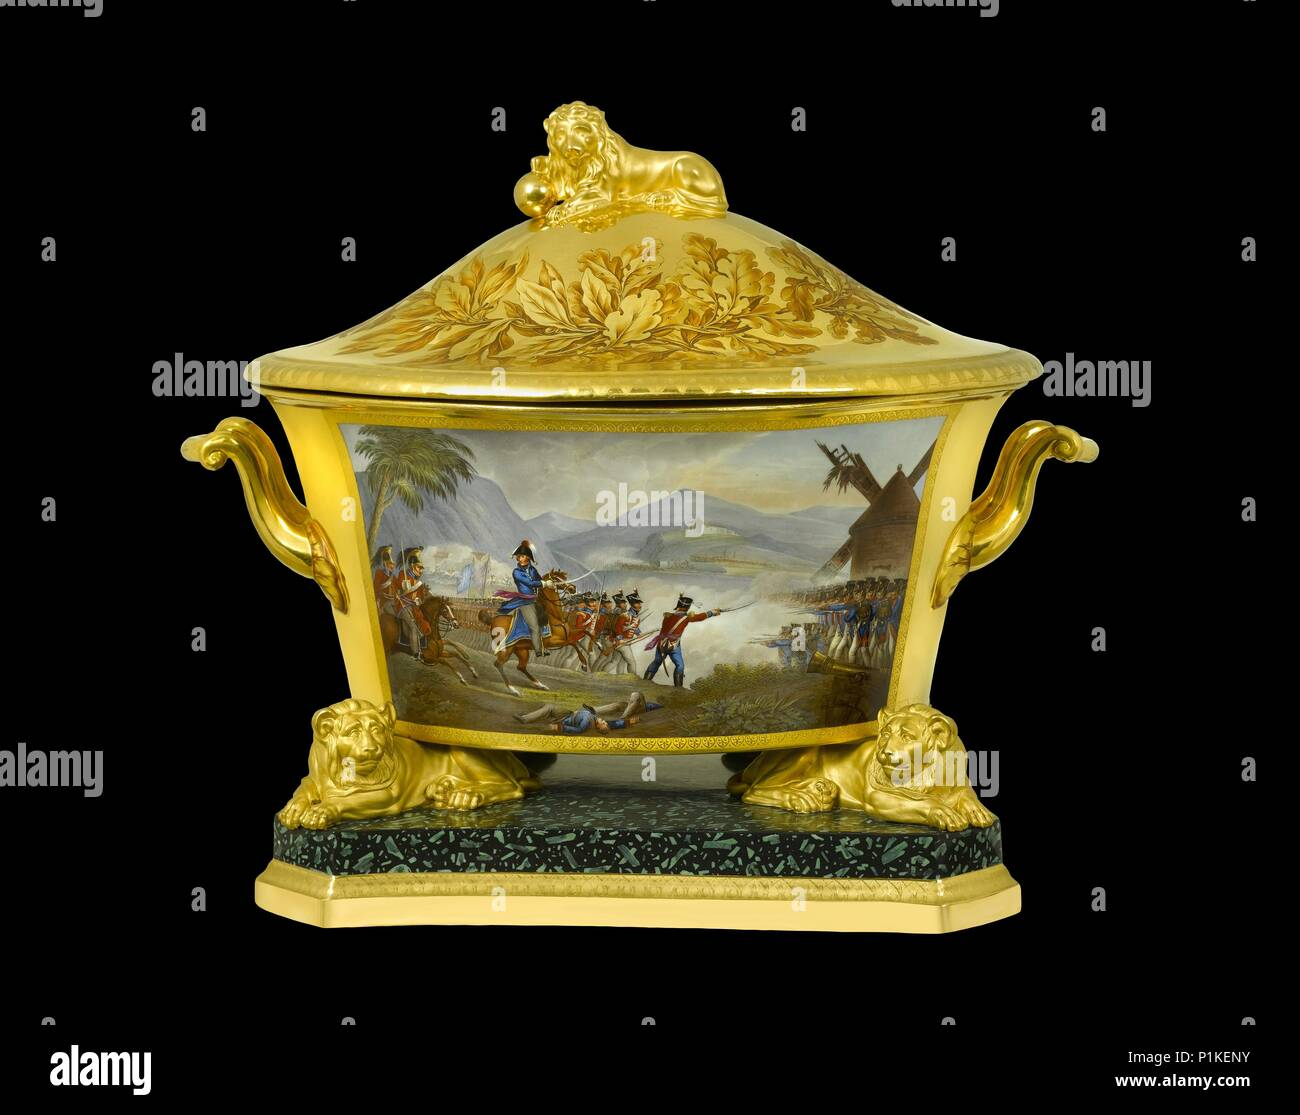 Soup tureen depicting the Battle of Rolica, Portugal, 1808 (1817-1819). Item in Apsley House, London, from the Duke of Wellington's Prussian Service,  - Stock Image